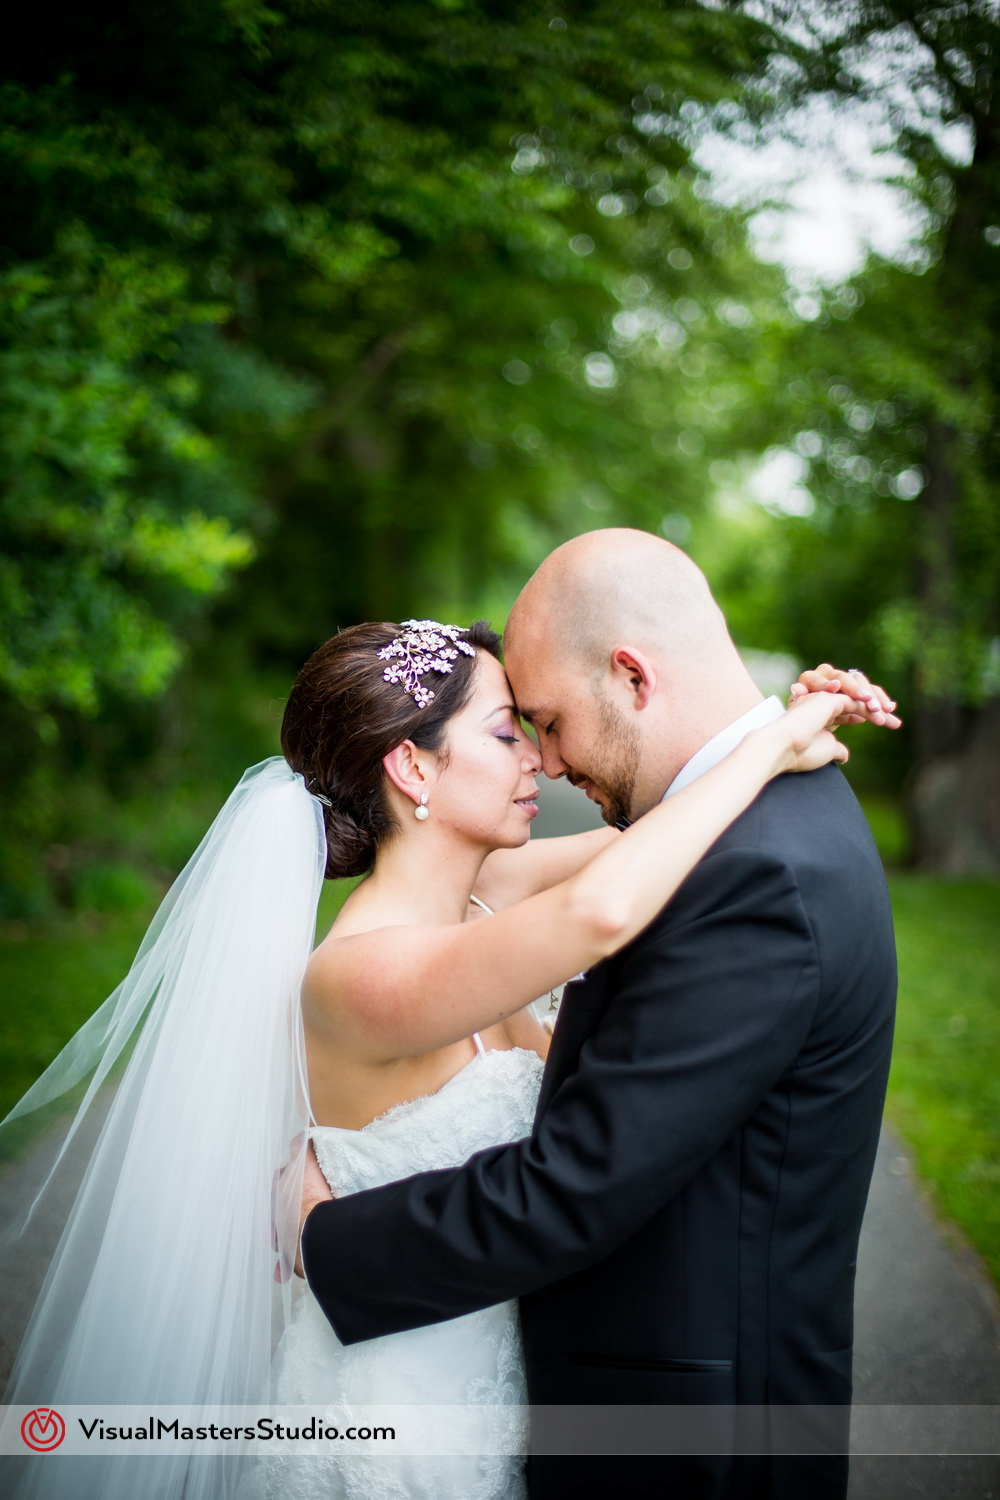 Bride and Groom Moment Alone at Verona Park by Visual Masters